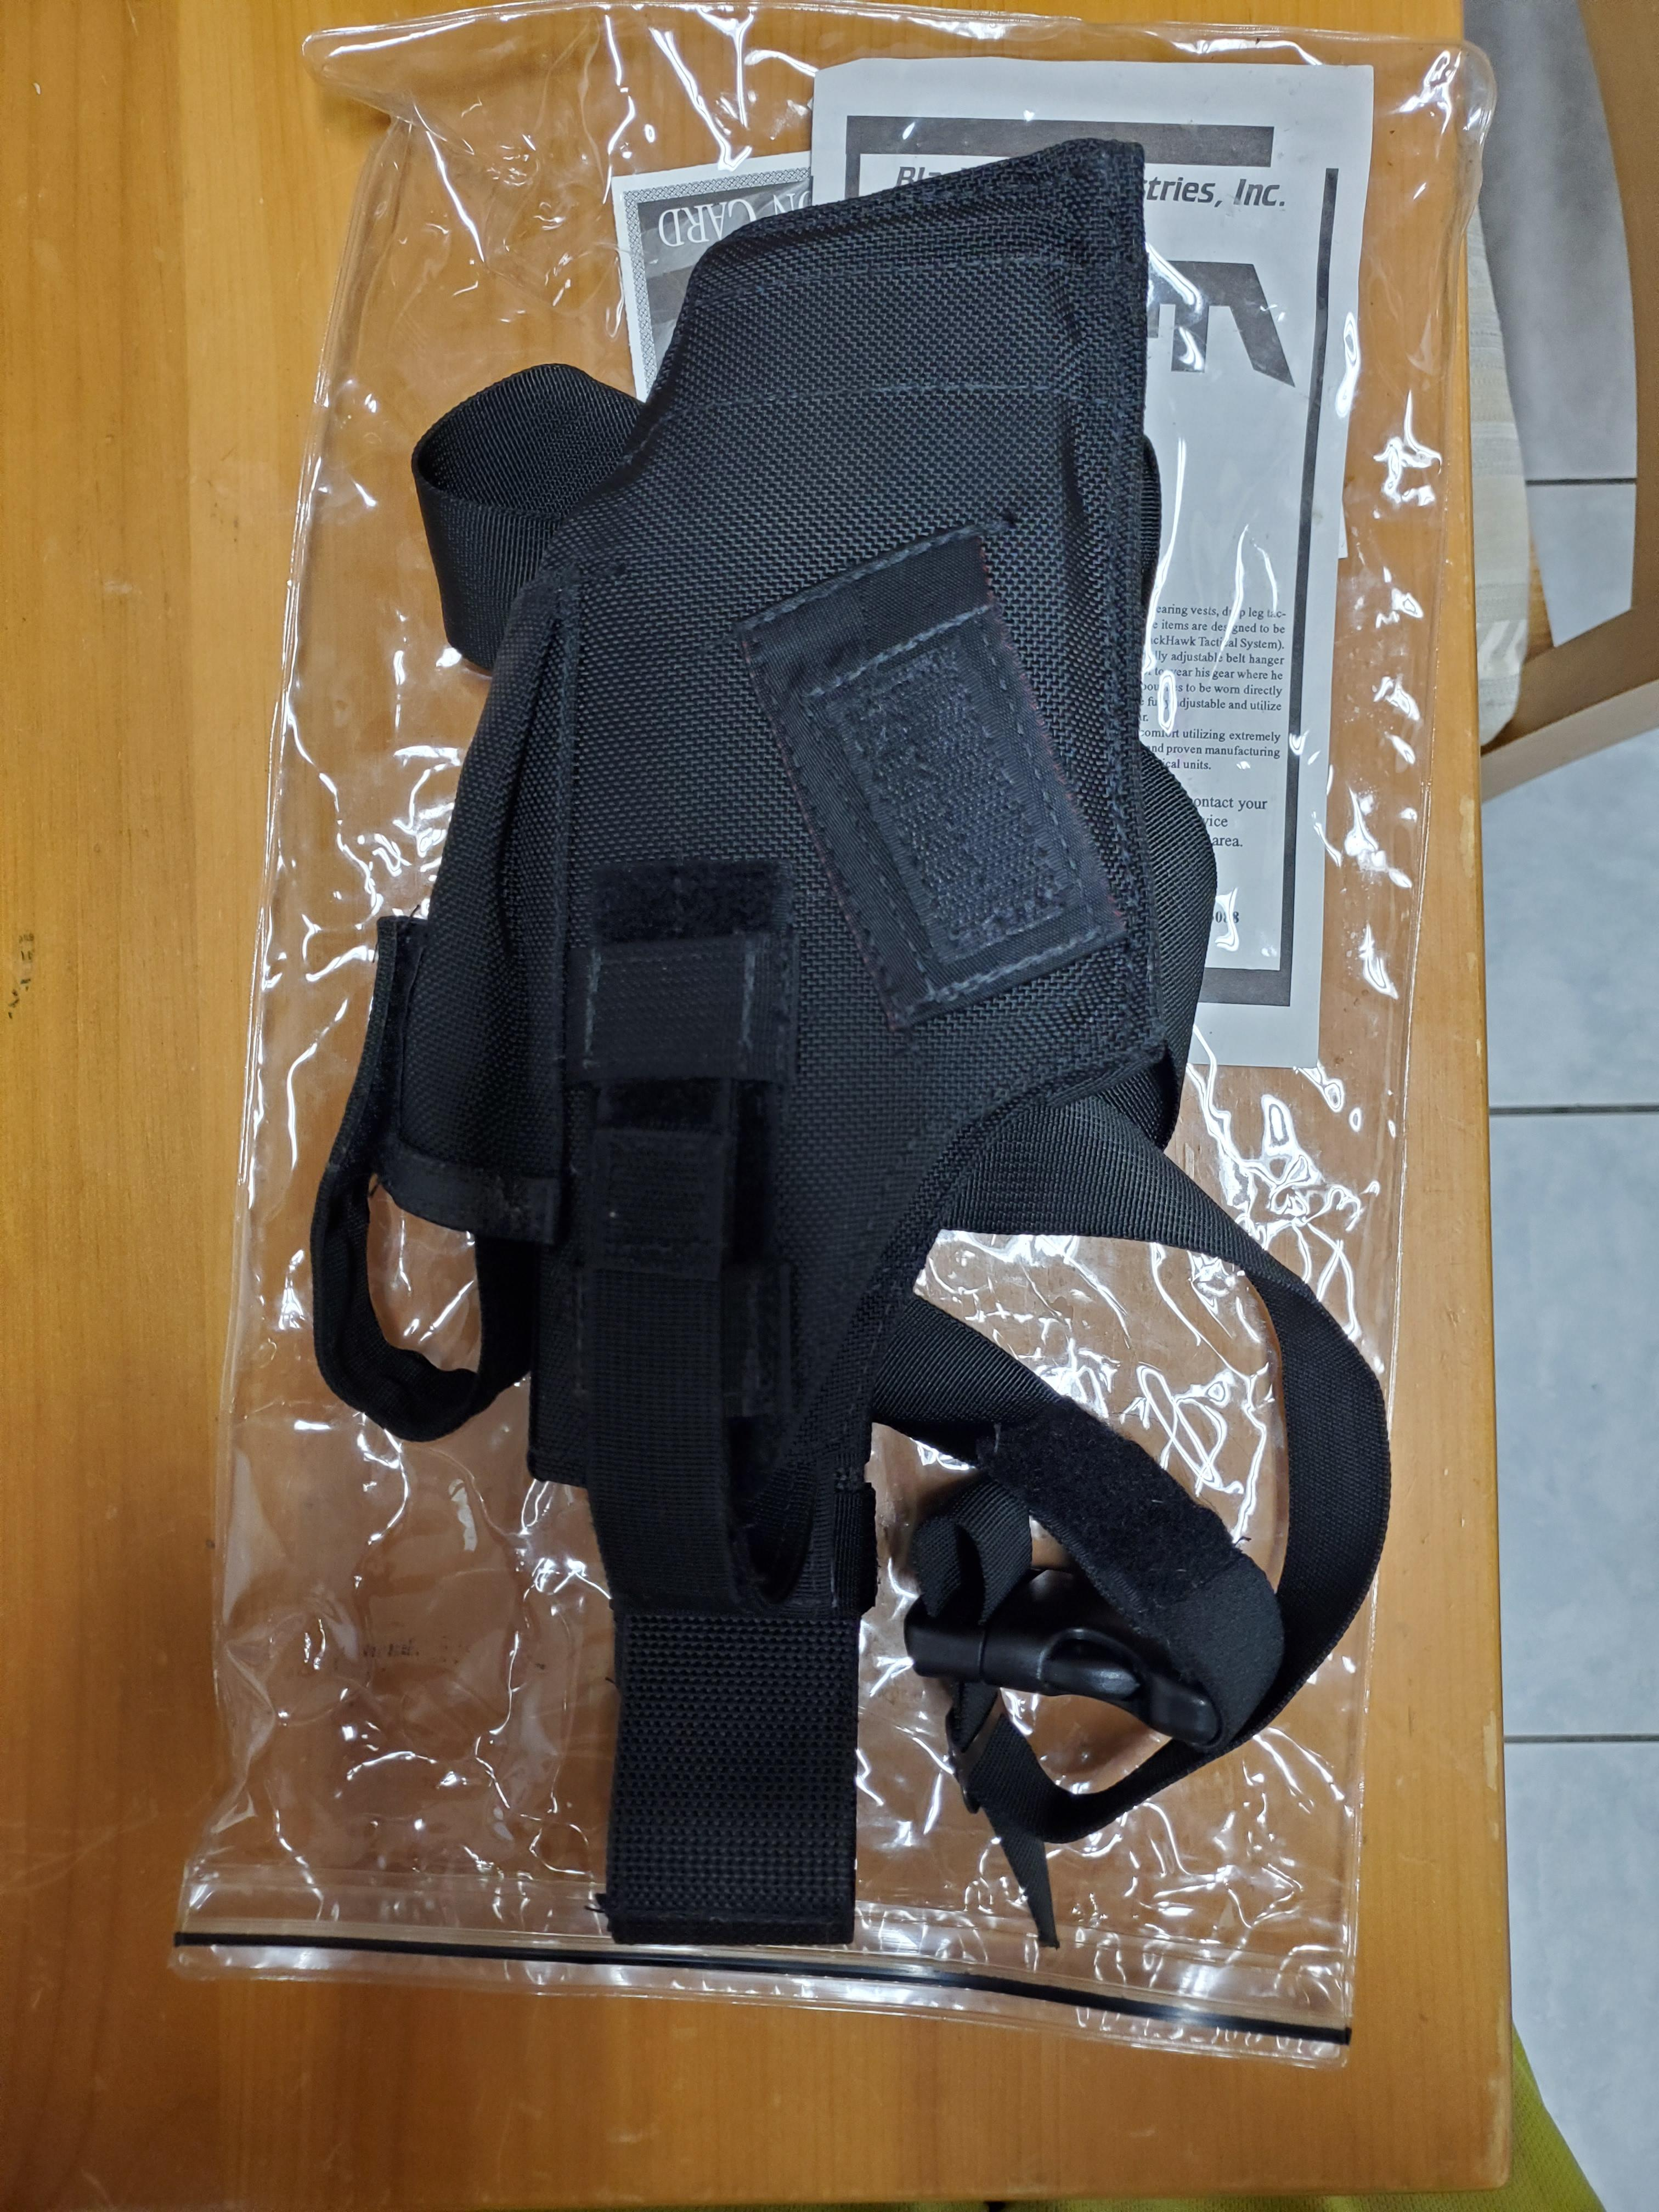 Hk Mark 23 inside a eagle USP drop leg holster?-20191205_220611_1575601979745.jpg